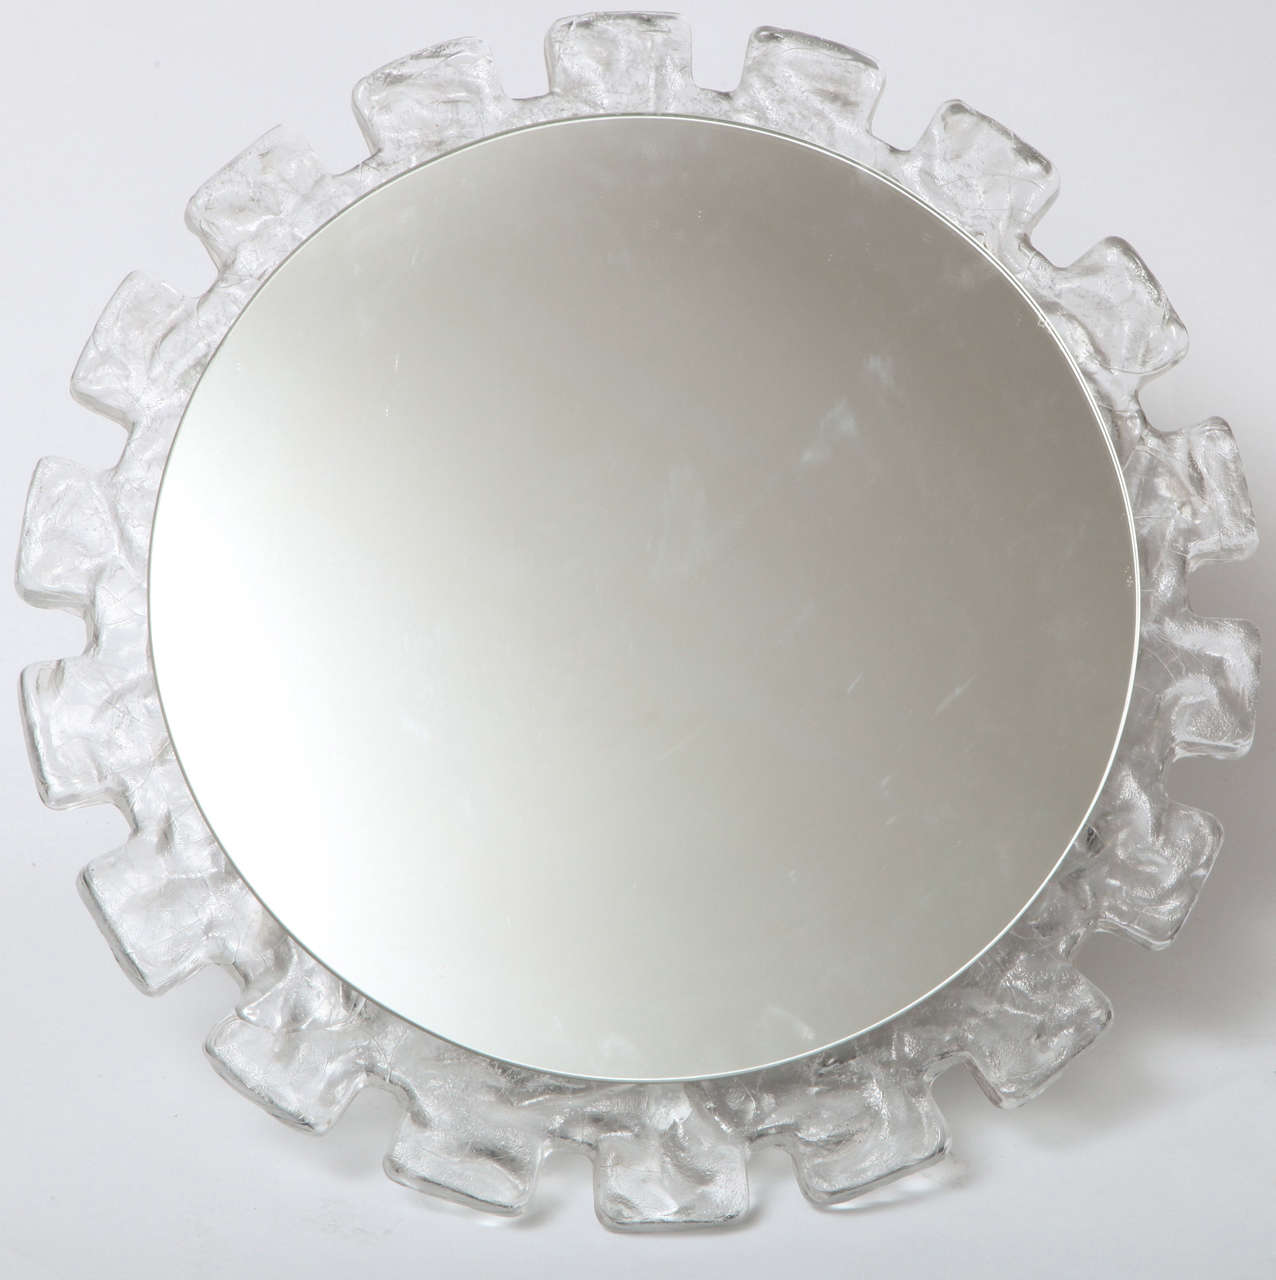 A great illuminated wall mirror with a curved molded resin frame.  Great for a powder room or entrance.